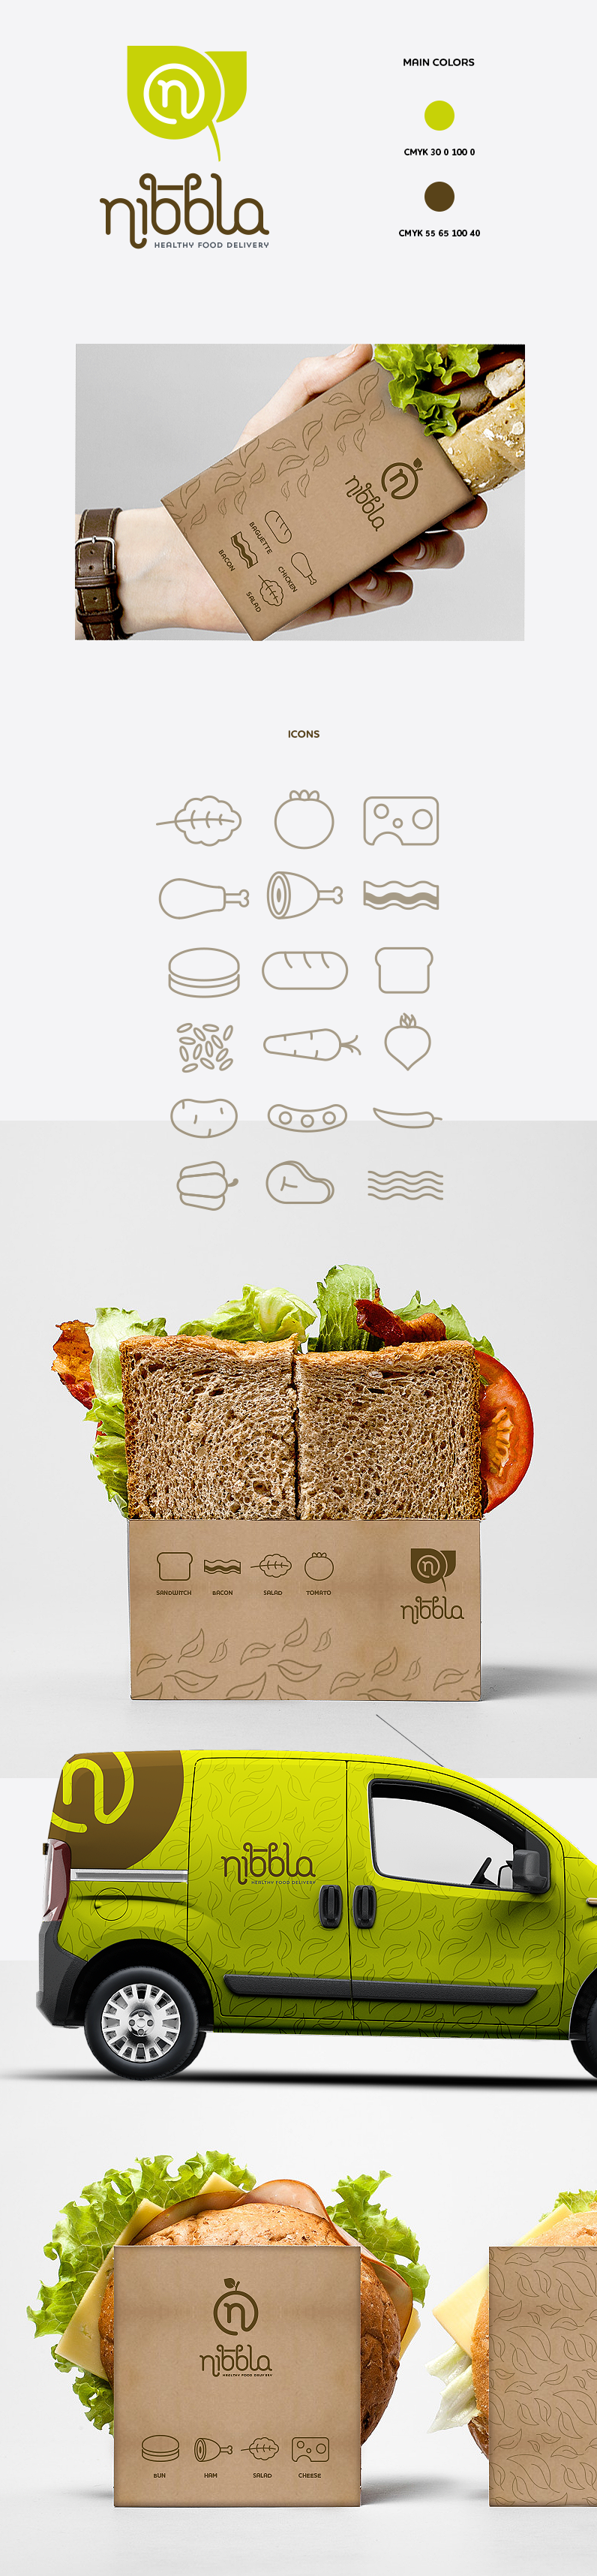 corporate identity for food brand